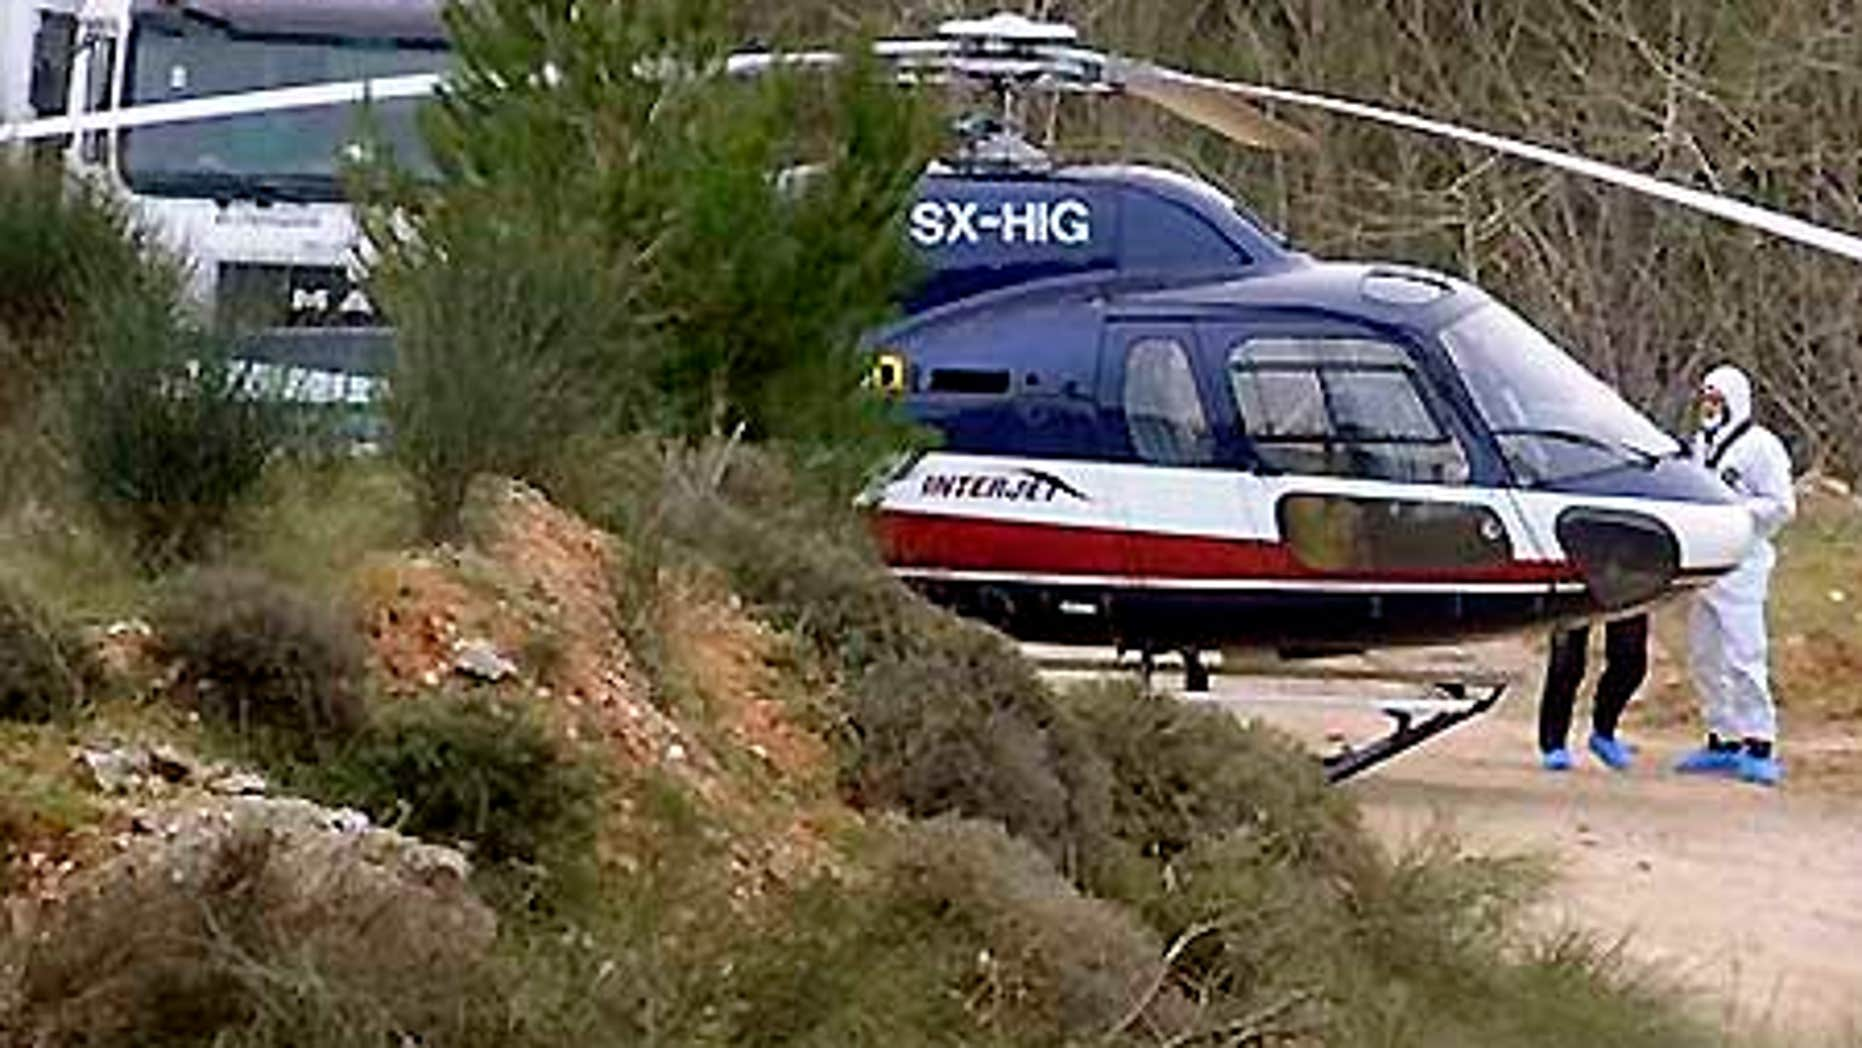 Feb. 22: Forensic experts investigate a helicopter used in the escape of convicts Vassilis Paleokostas and Alket Rizaj from a high-security prison.